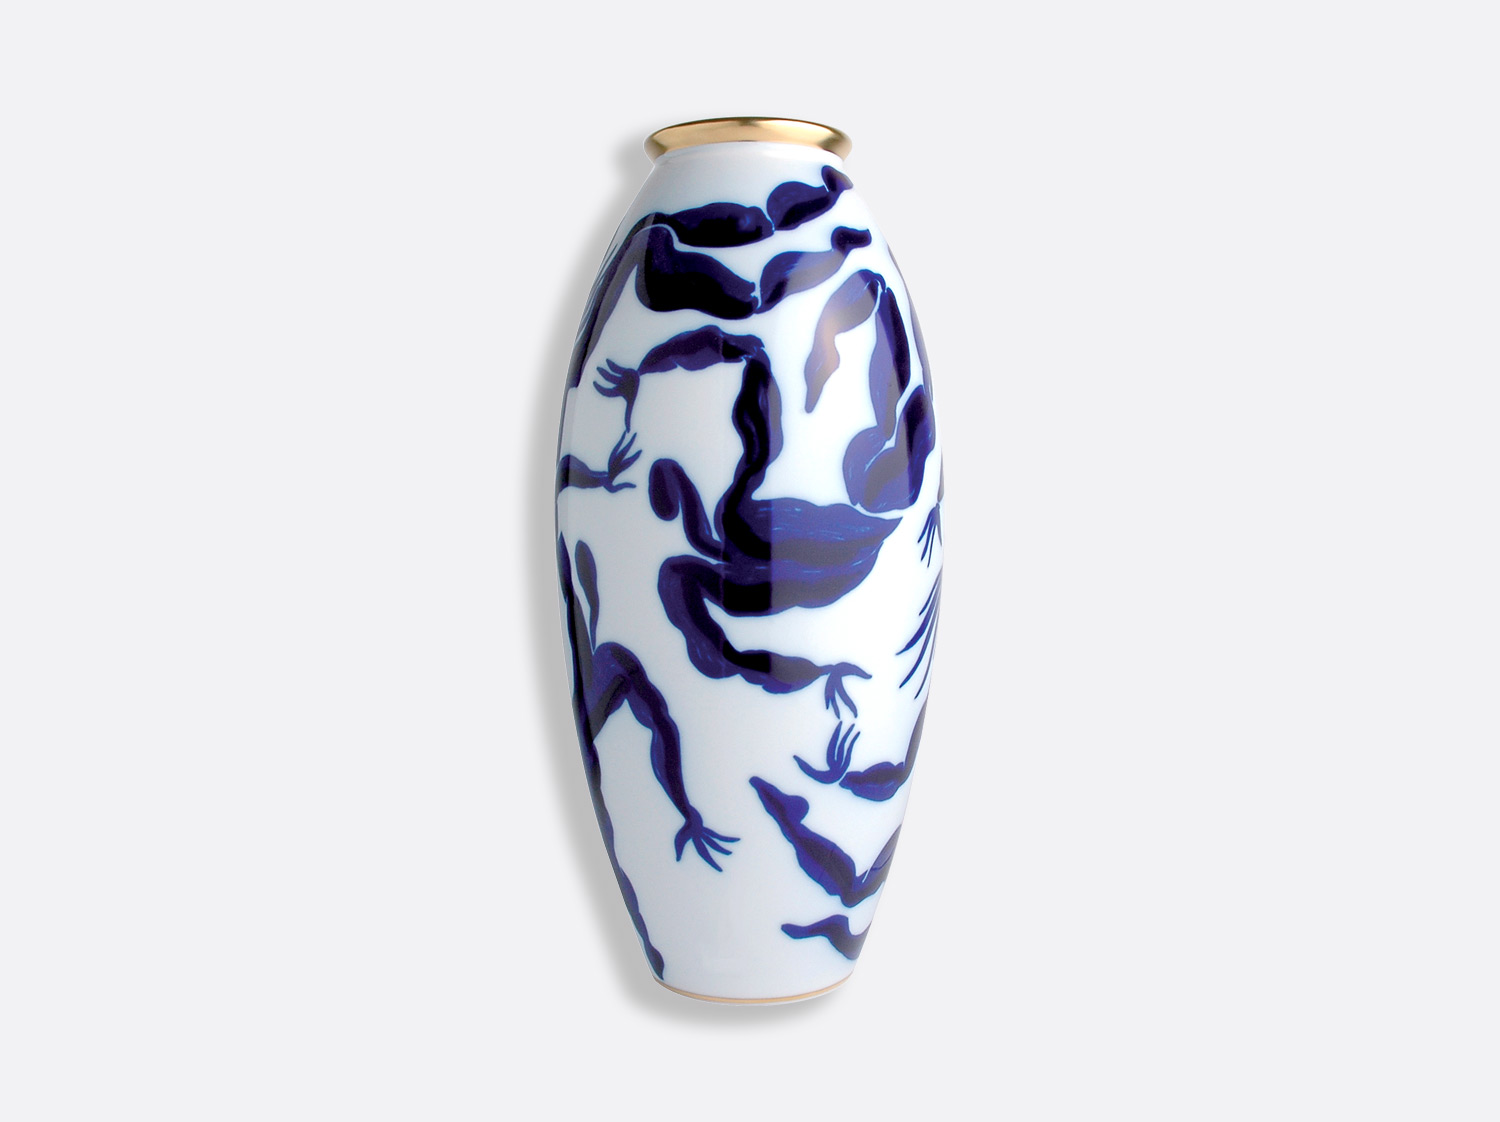 Vase Bacchanale H.37 cm en porcelaine de la collection Bacchanale Bernardaud